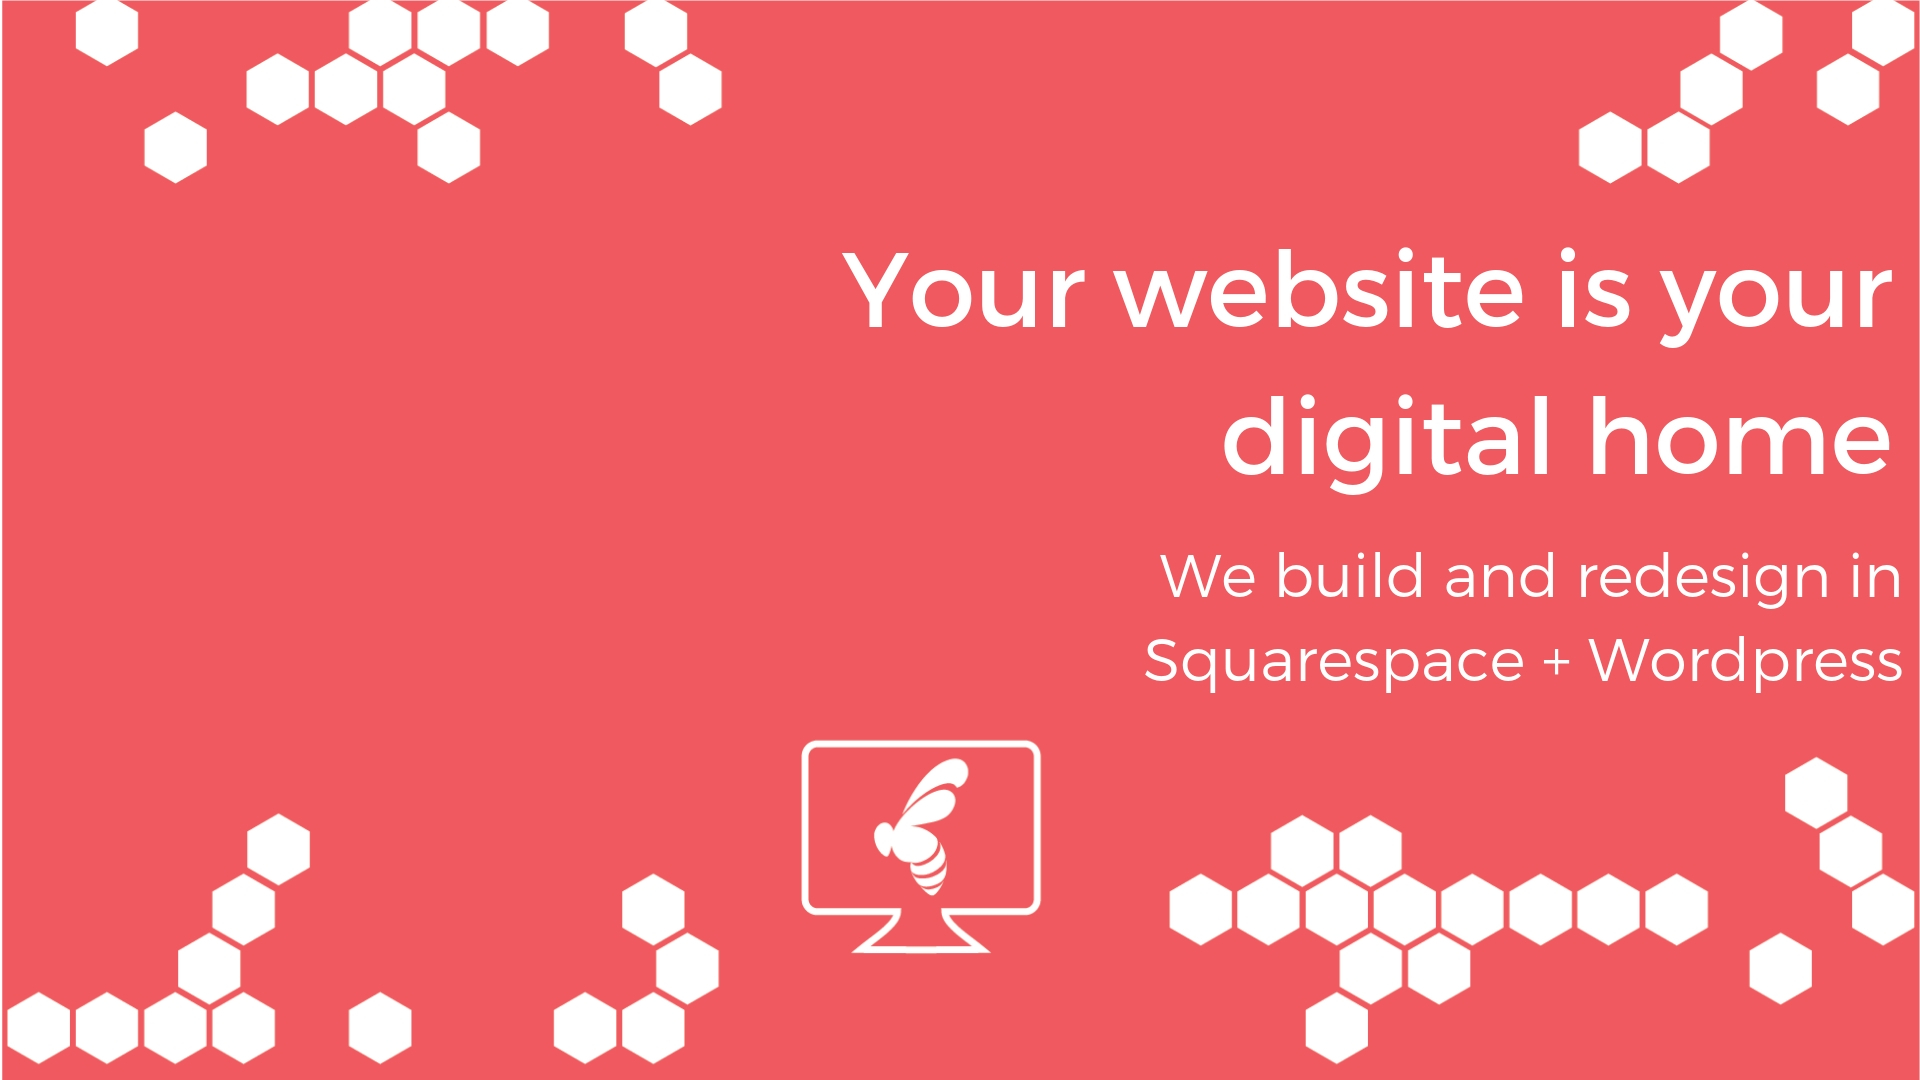 Beehive-Development-Your-website-is-your-digital-home.jpg